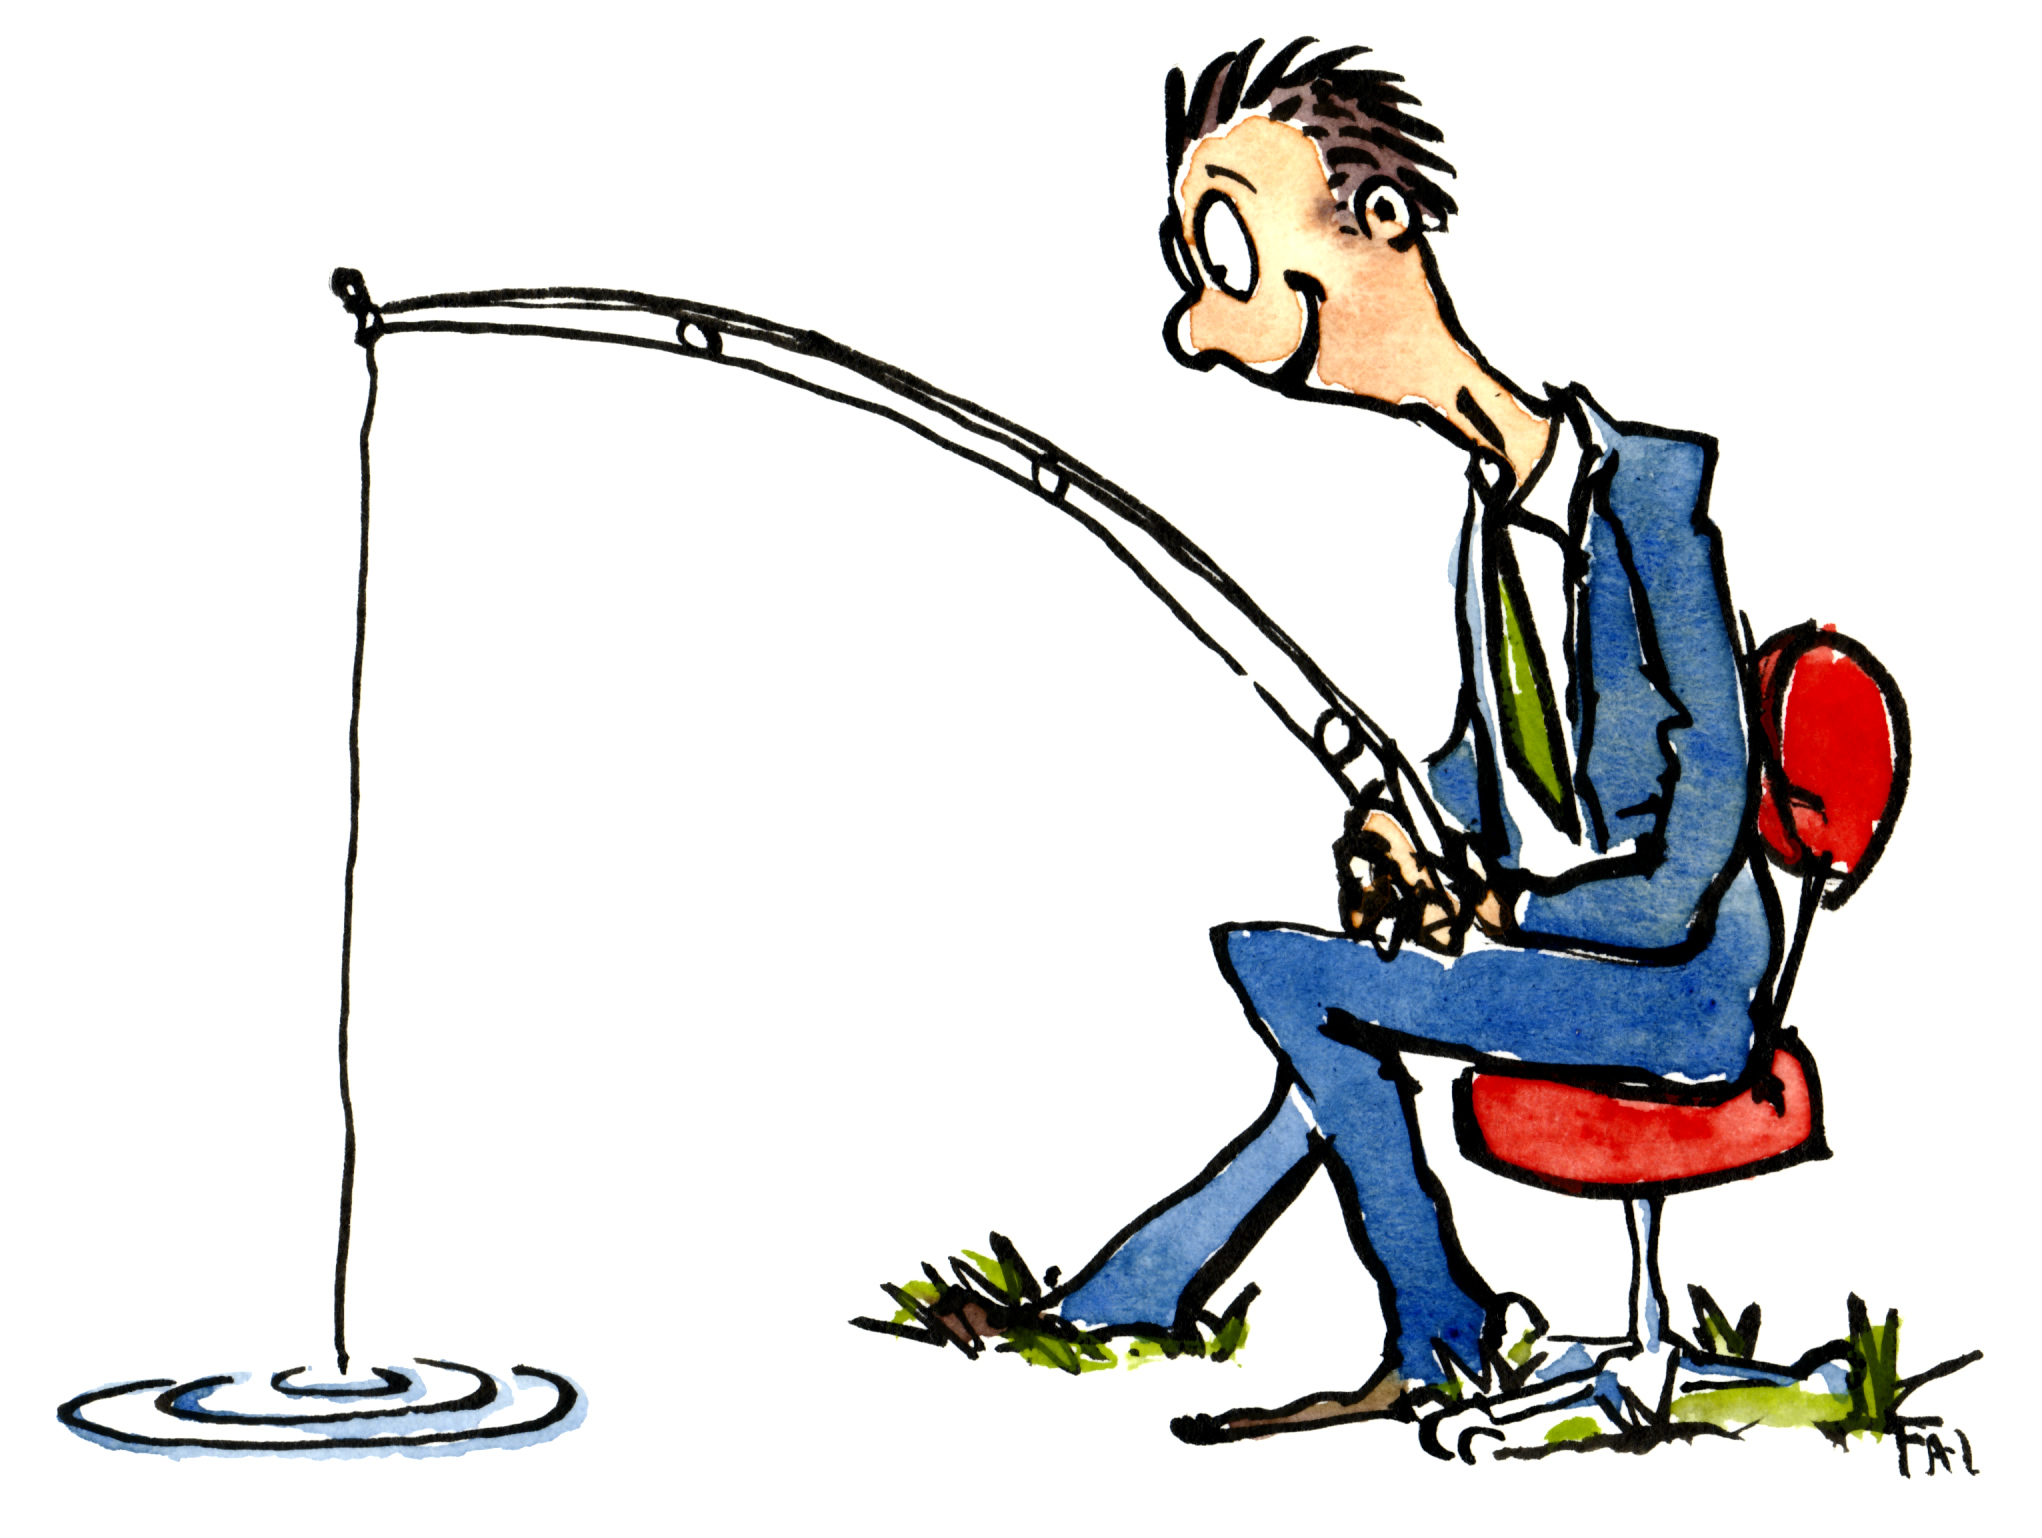 idea fishing the hiking artist project by frits ahlefeldt fishing rod clipart with blue background fishing rod clipart black and white